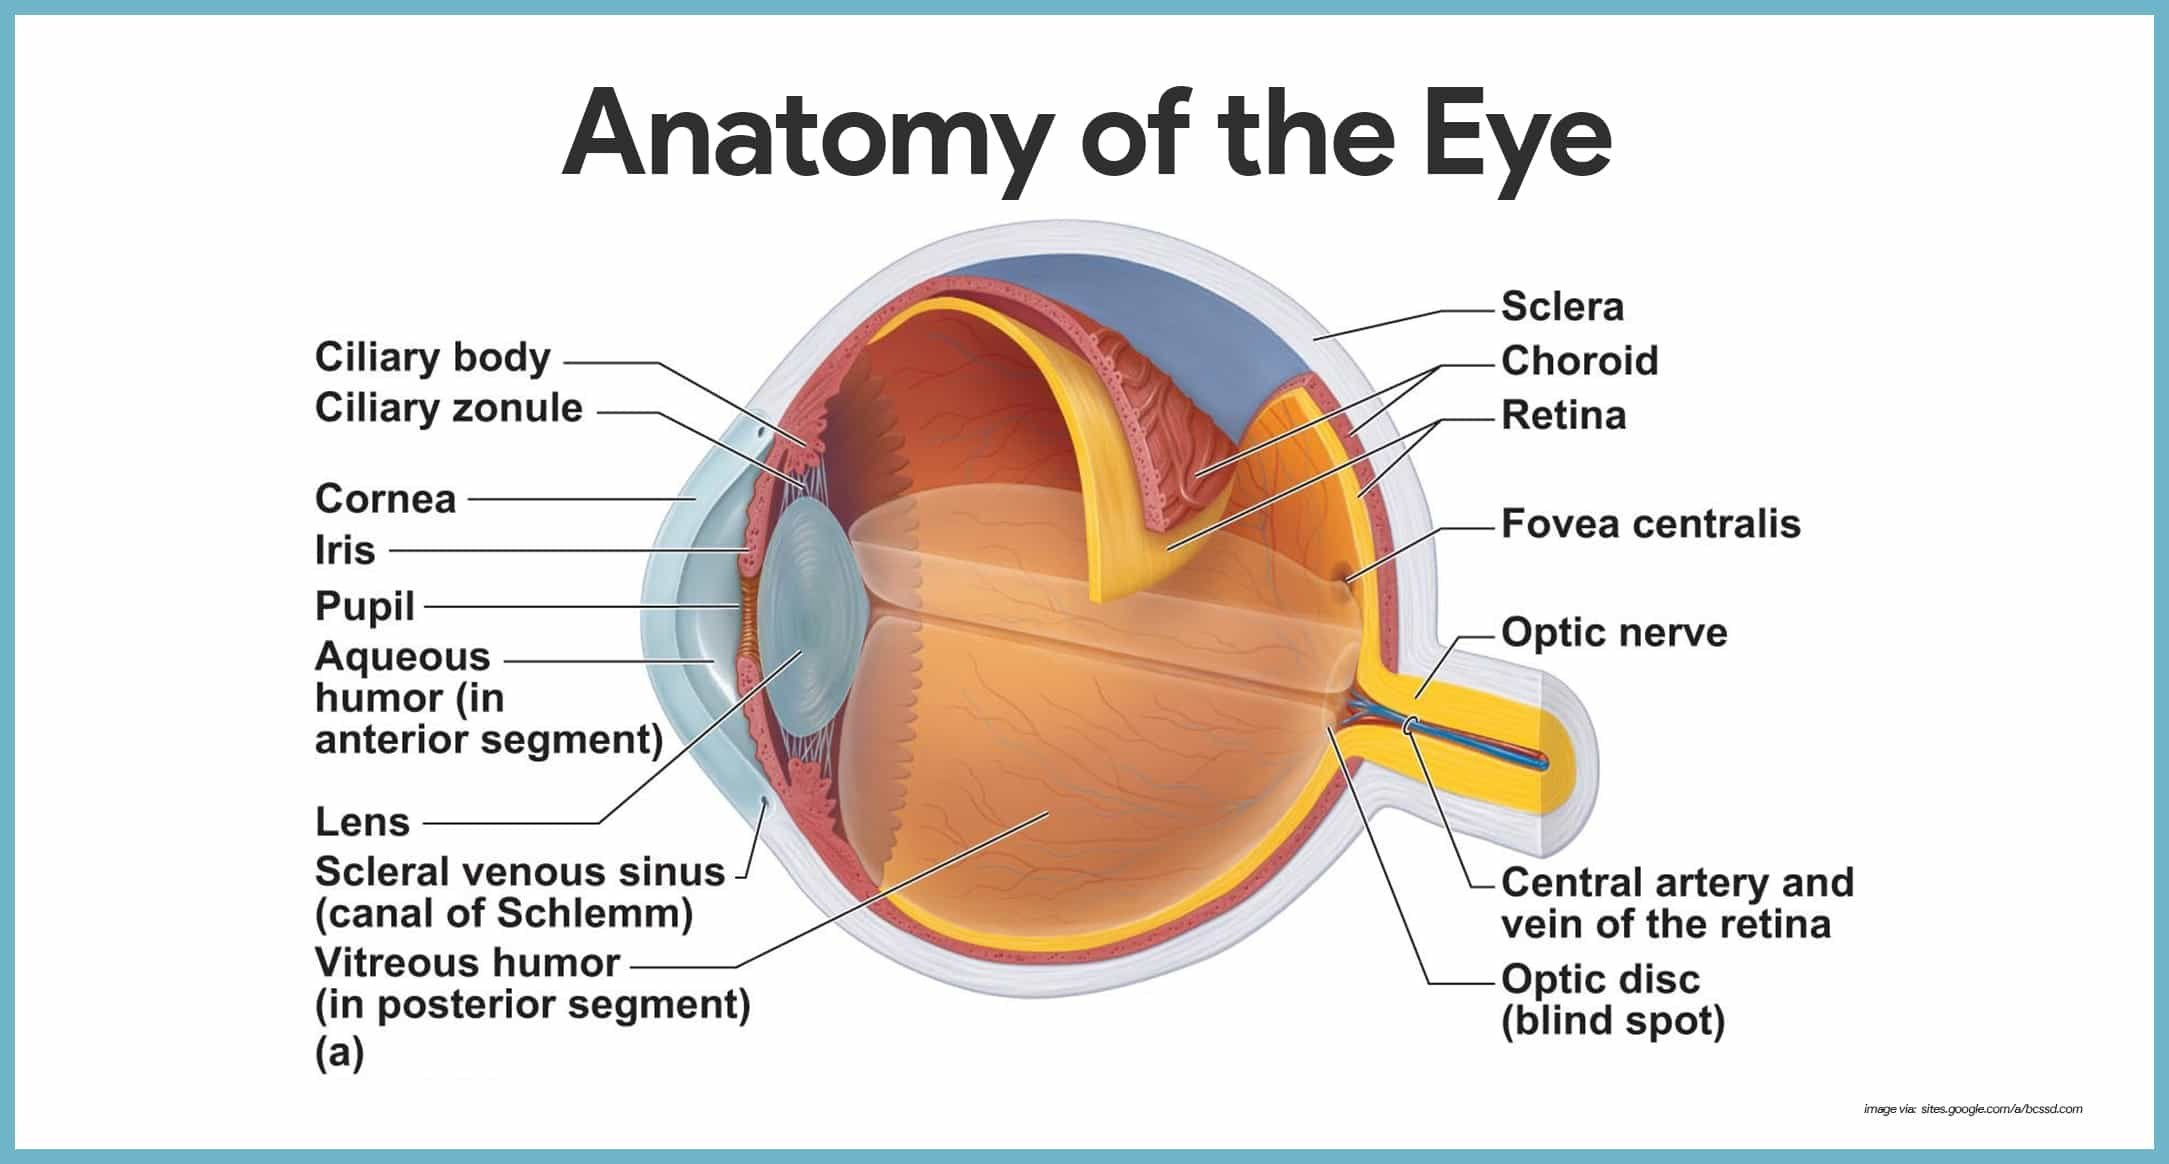 Special Senses Anatomy And Physiology  Nurseslabs Within The Eye And Vision Anatomy Worksheet Answers